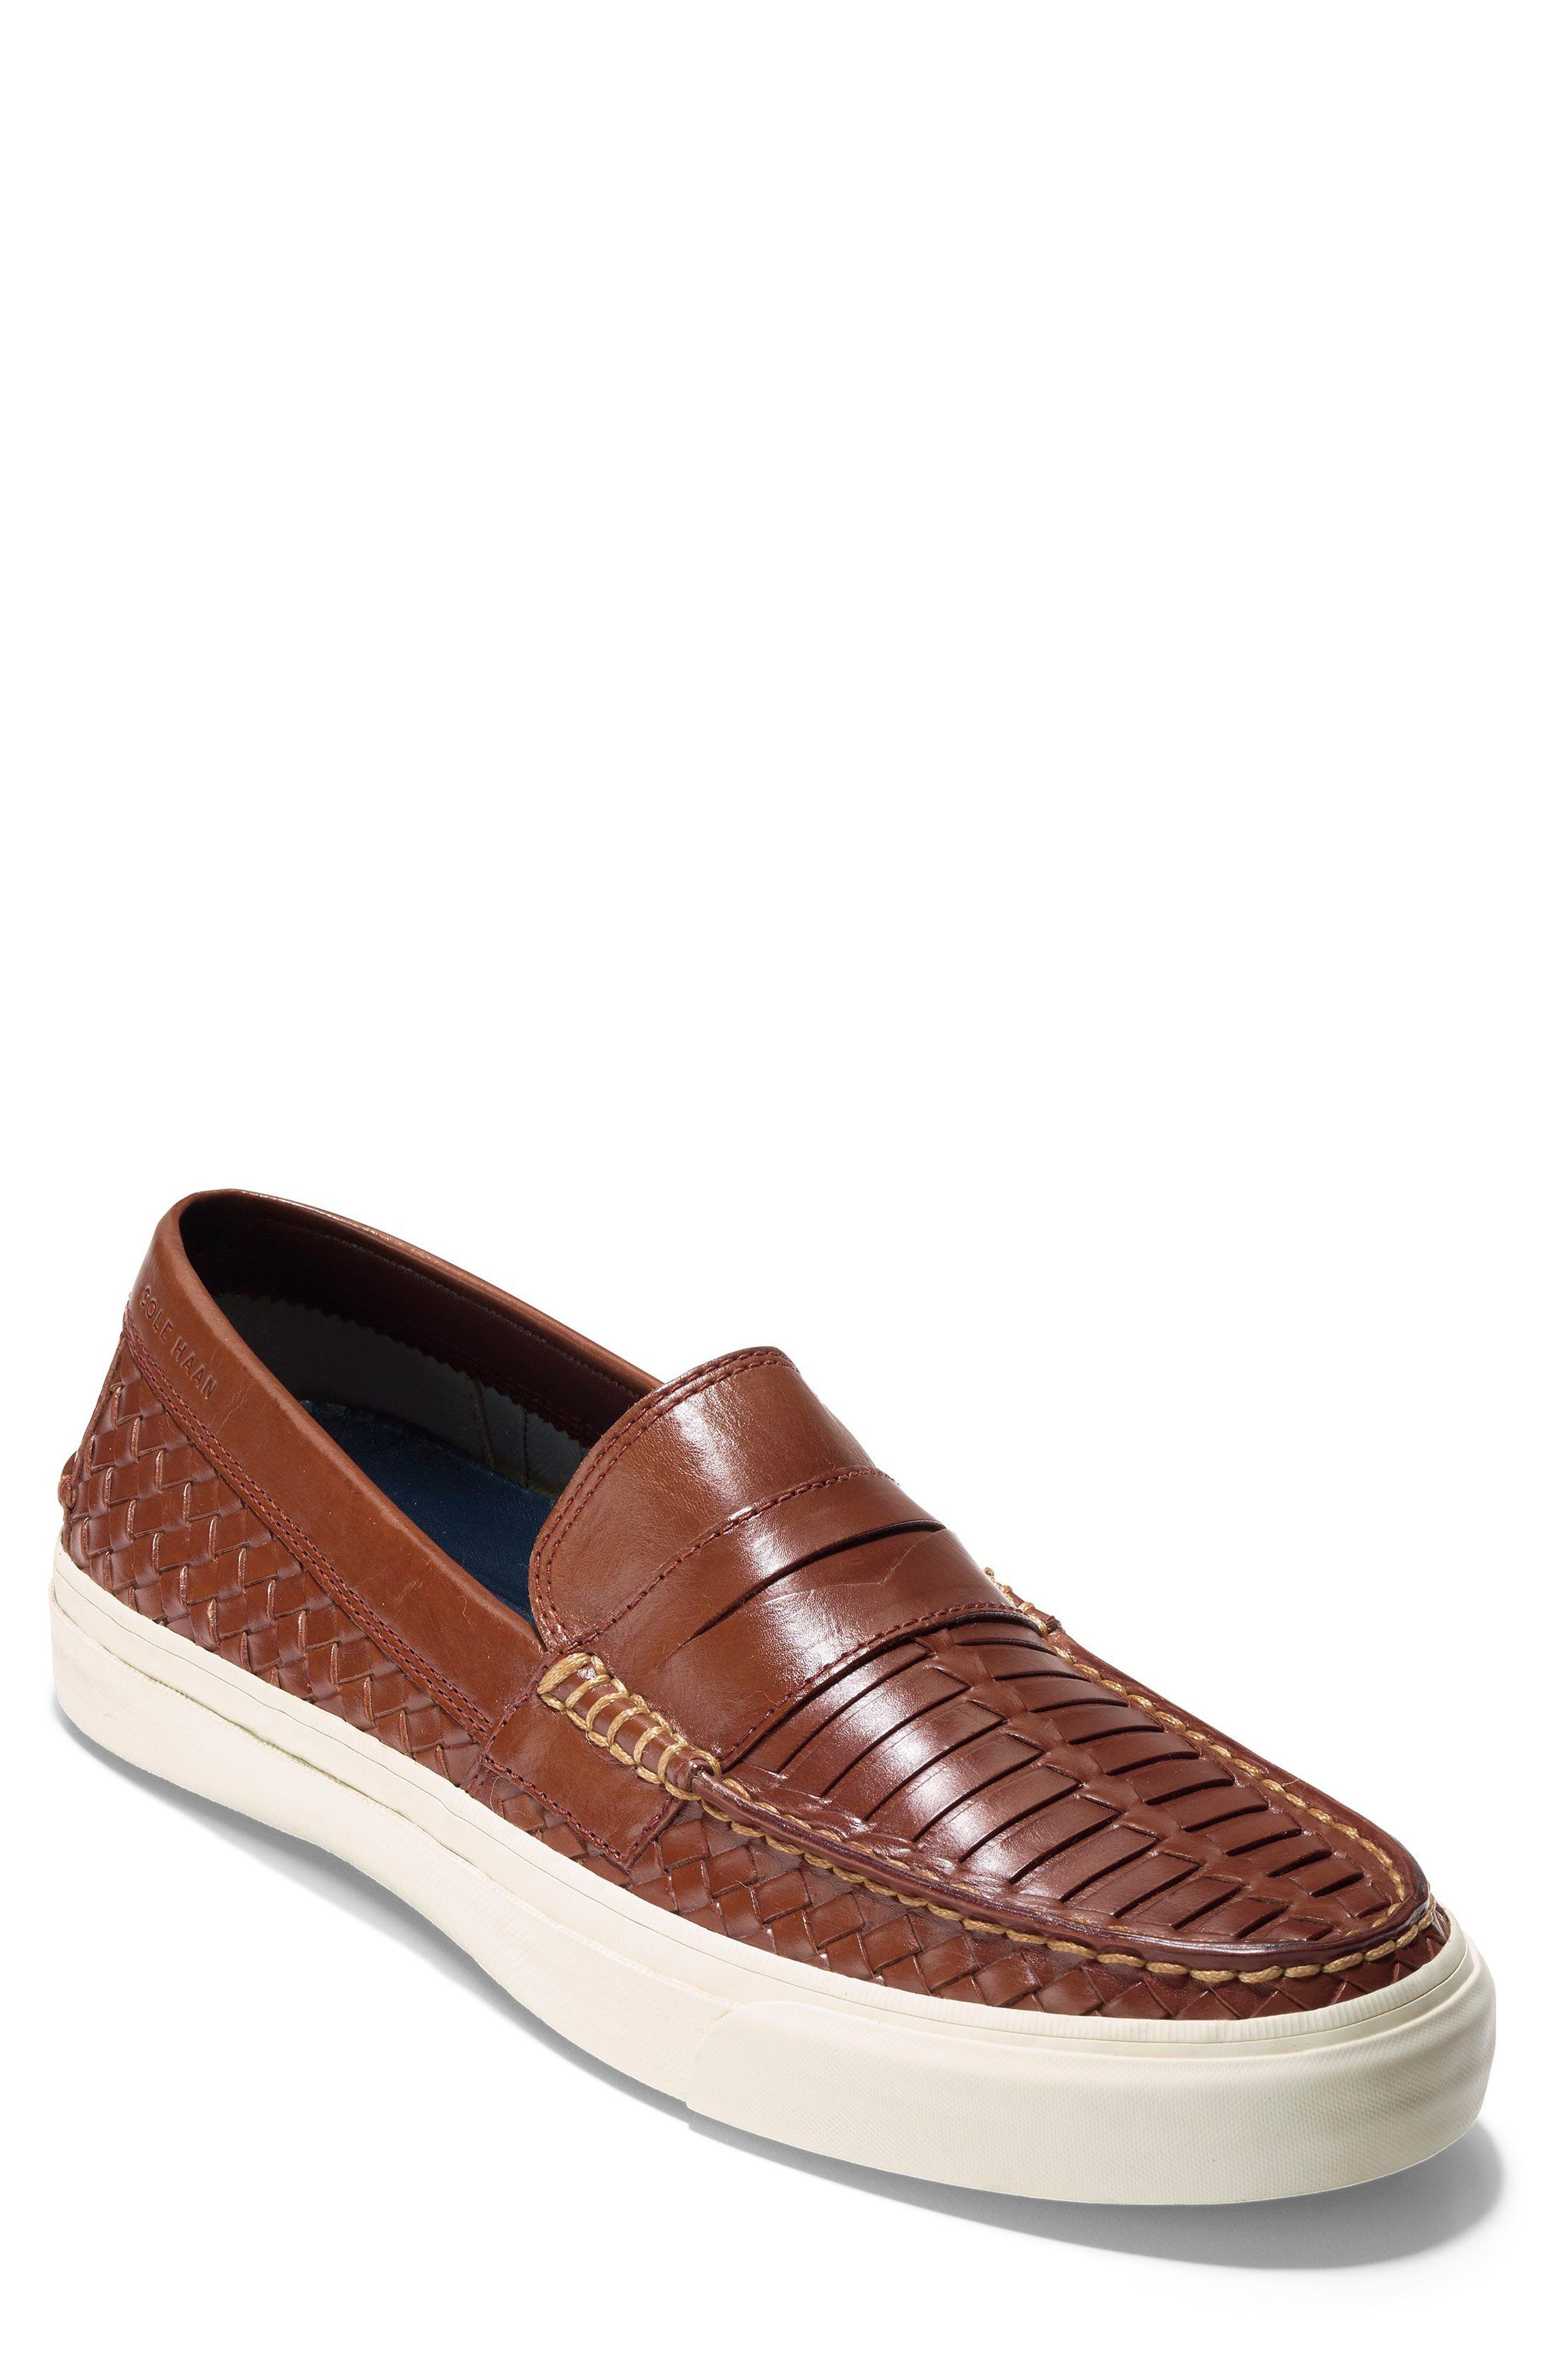 Pinch Weekend LX Huarache Loafer,                             Main thumbnail 1, color,                             WOODBURY WOVEN BURNISH